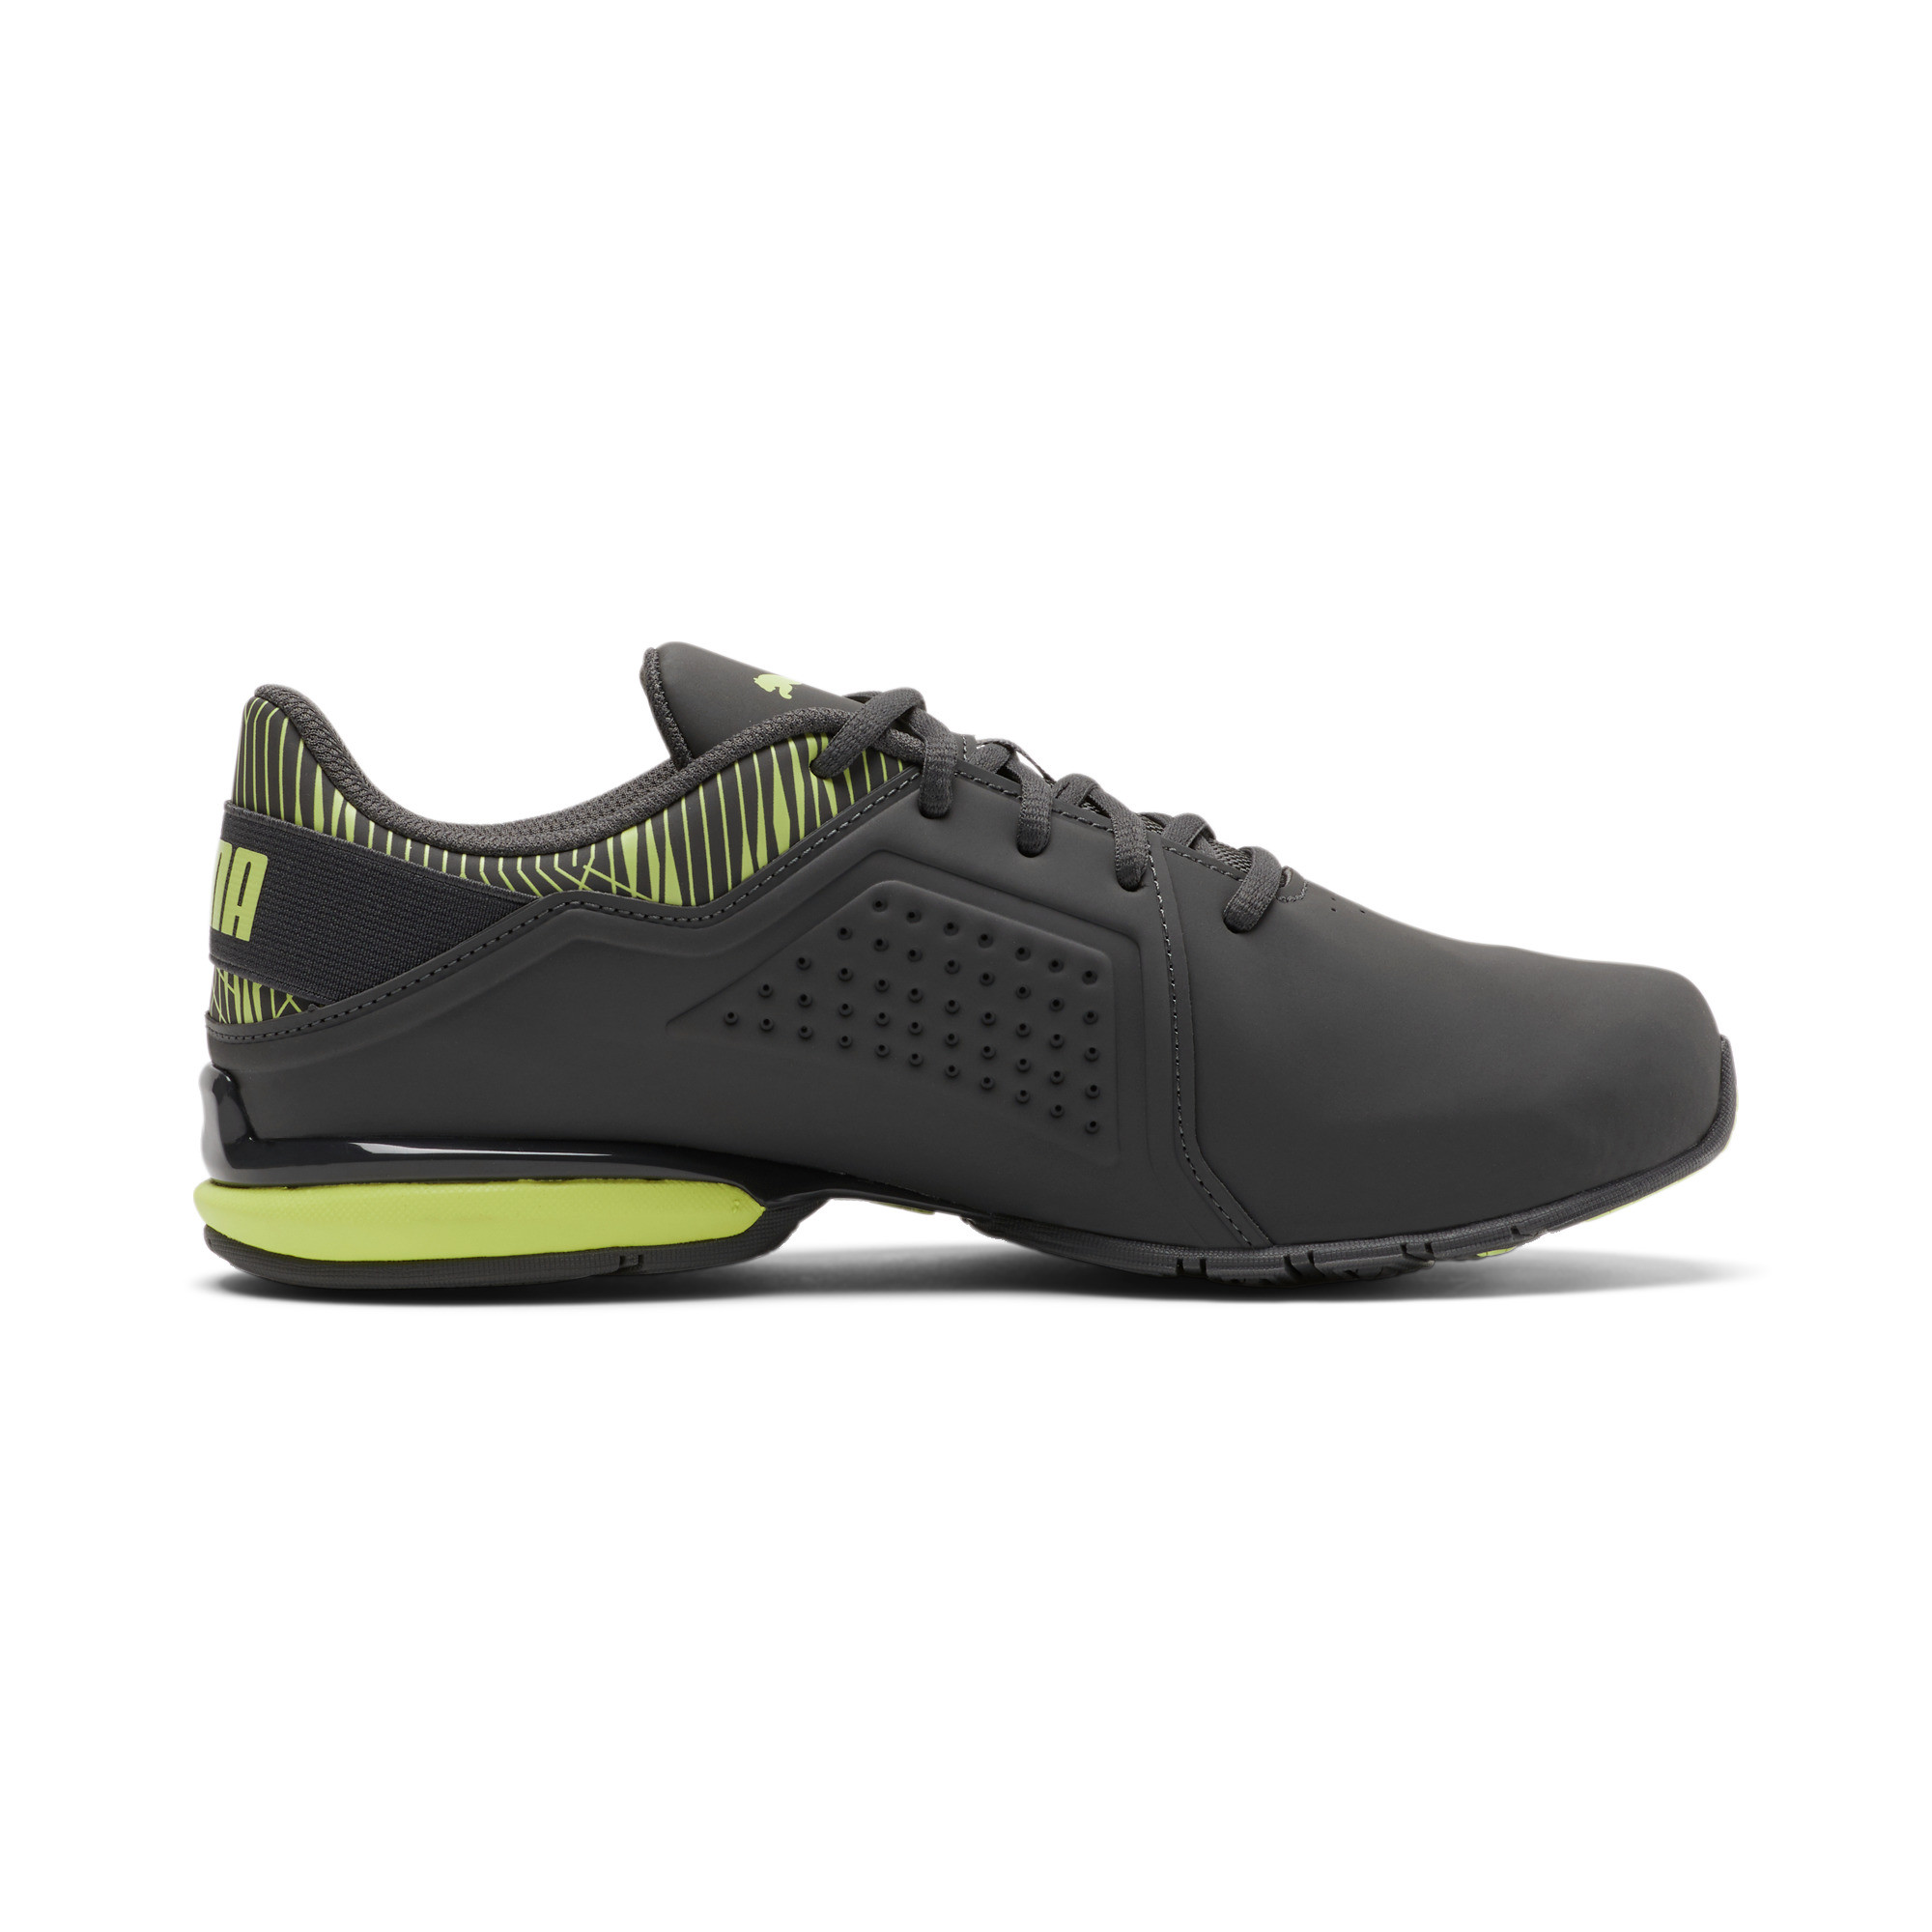 PUMA-Men-039-s-Viz-Runner-Graphic-Sneakers thumbnail 24